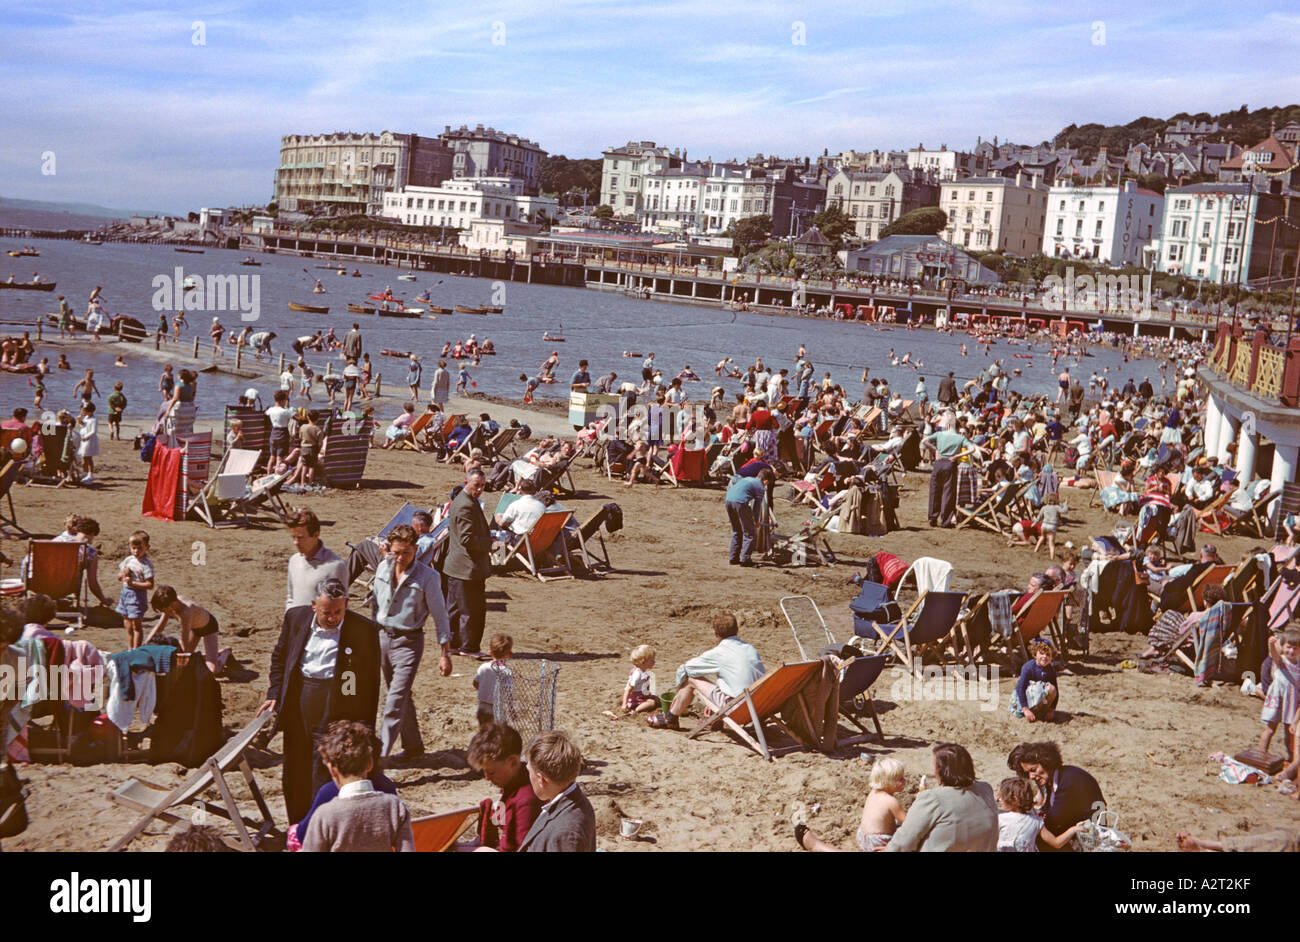 'Madeira Cove Beach, 'Weston Super Mare', Somerset, ^1960' - Stock Image